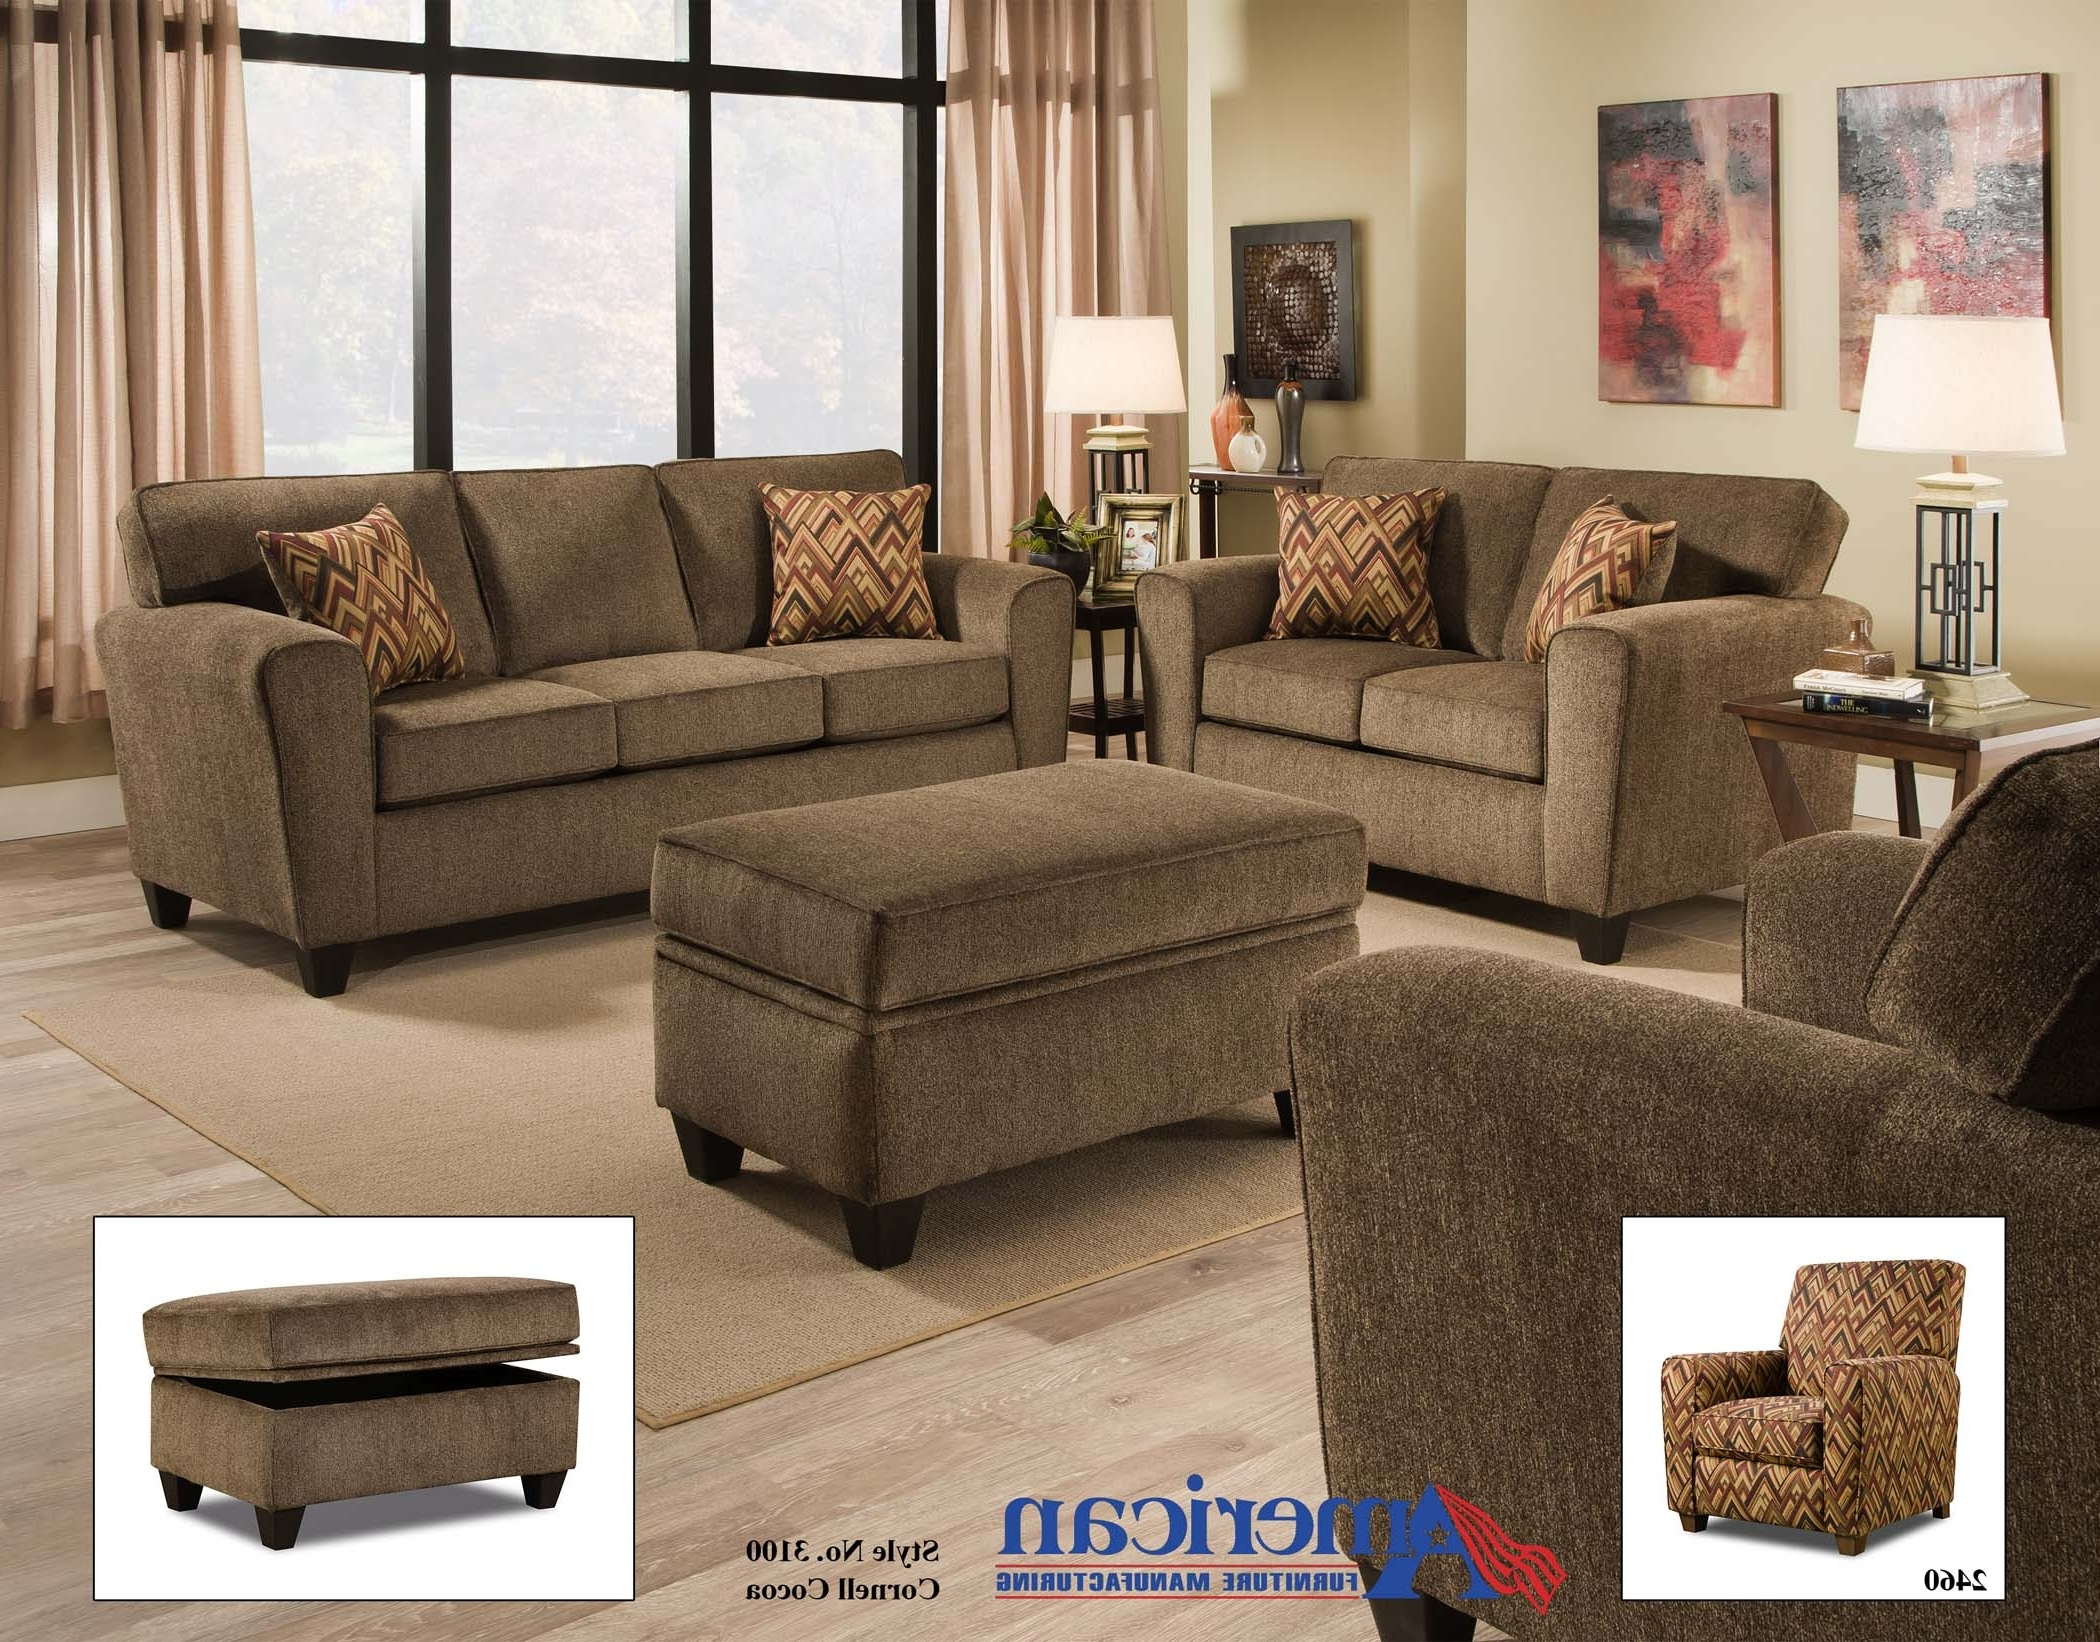 2017 Janesville Wi Sectional Sofas Within Crazy Joe's Best Deal Furniture (View 1 of 15)